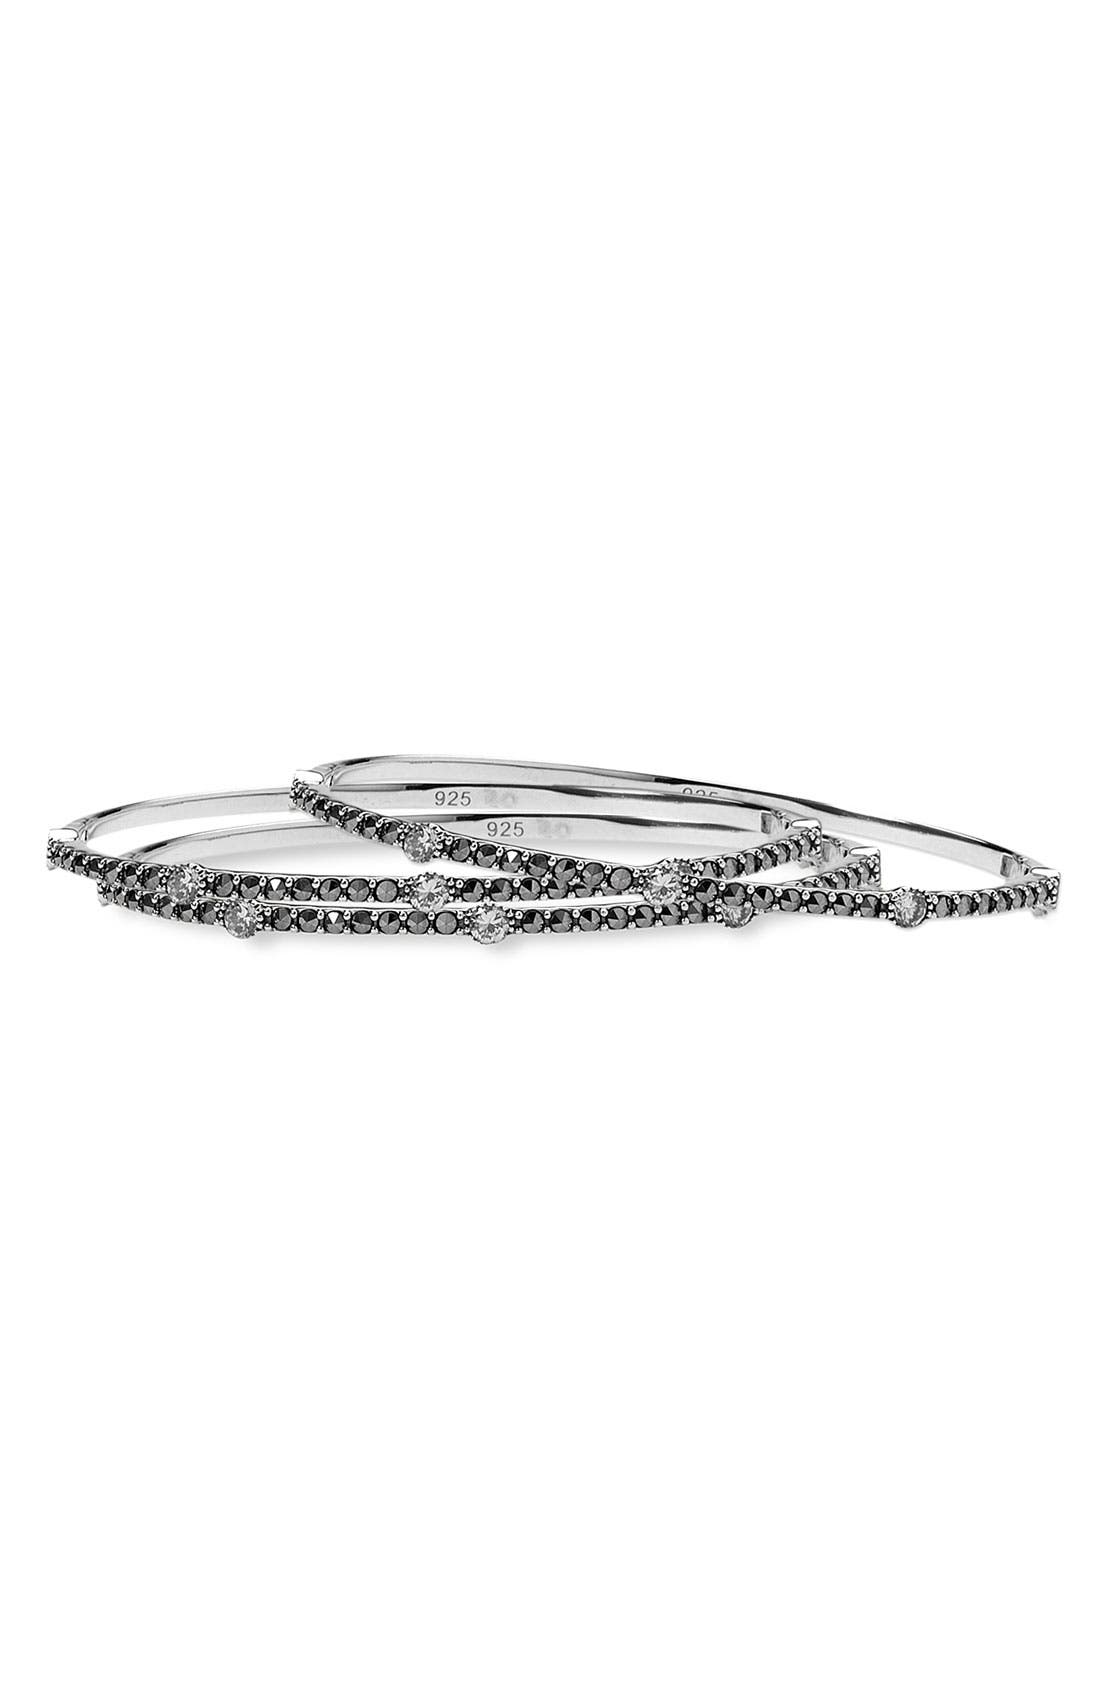 Alternate Image 1 Selected - Judith Jack Crystal & Marcasite Bangle